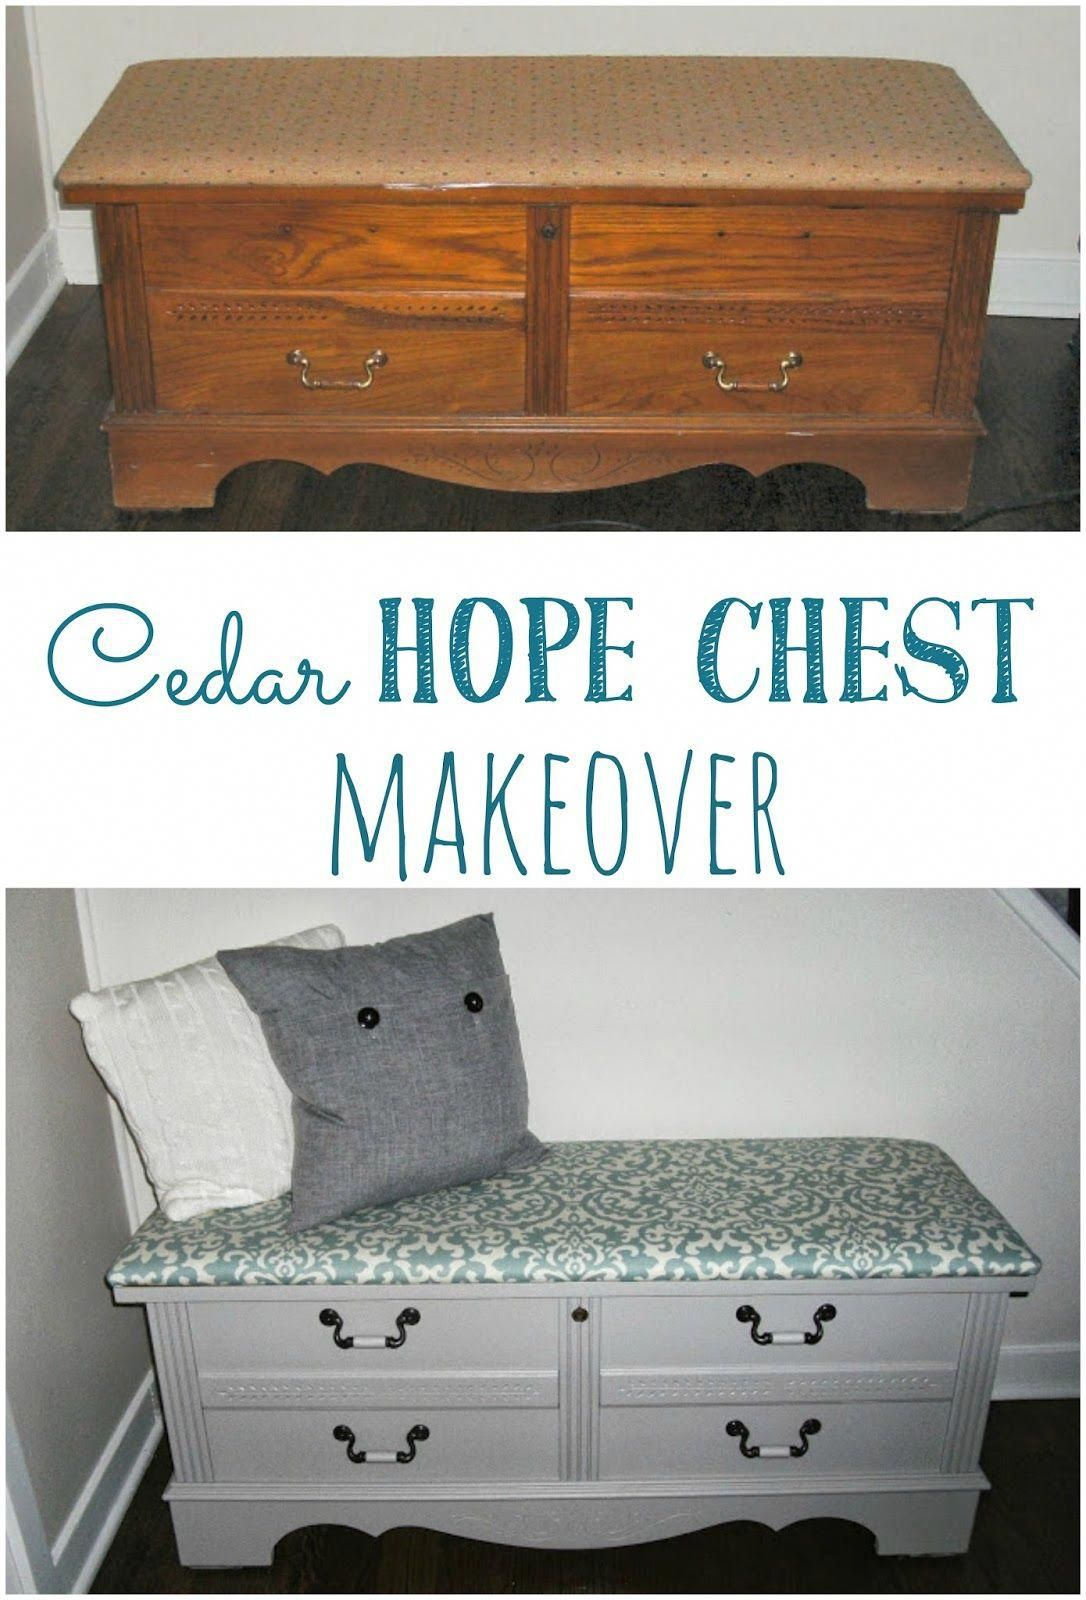 Updating hope chest ideas